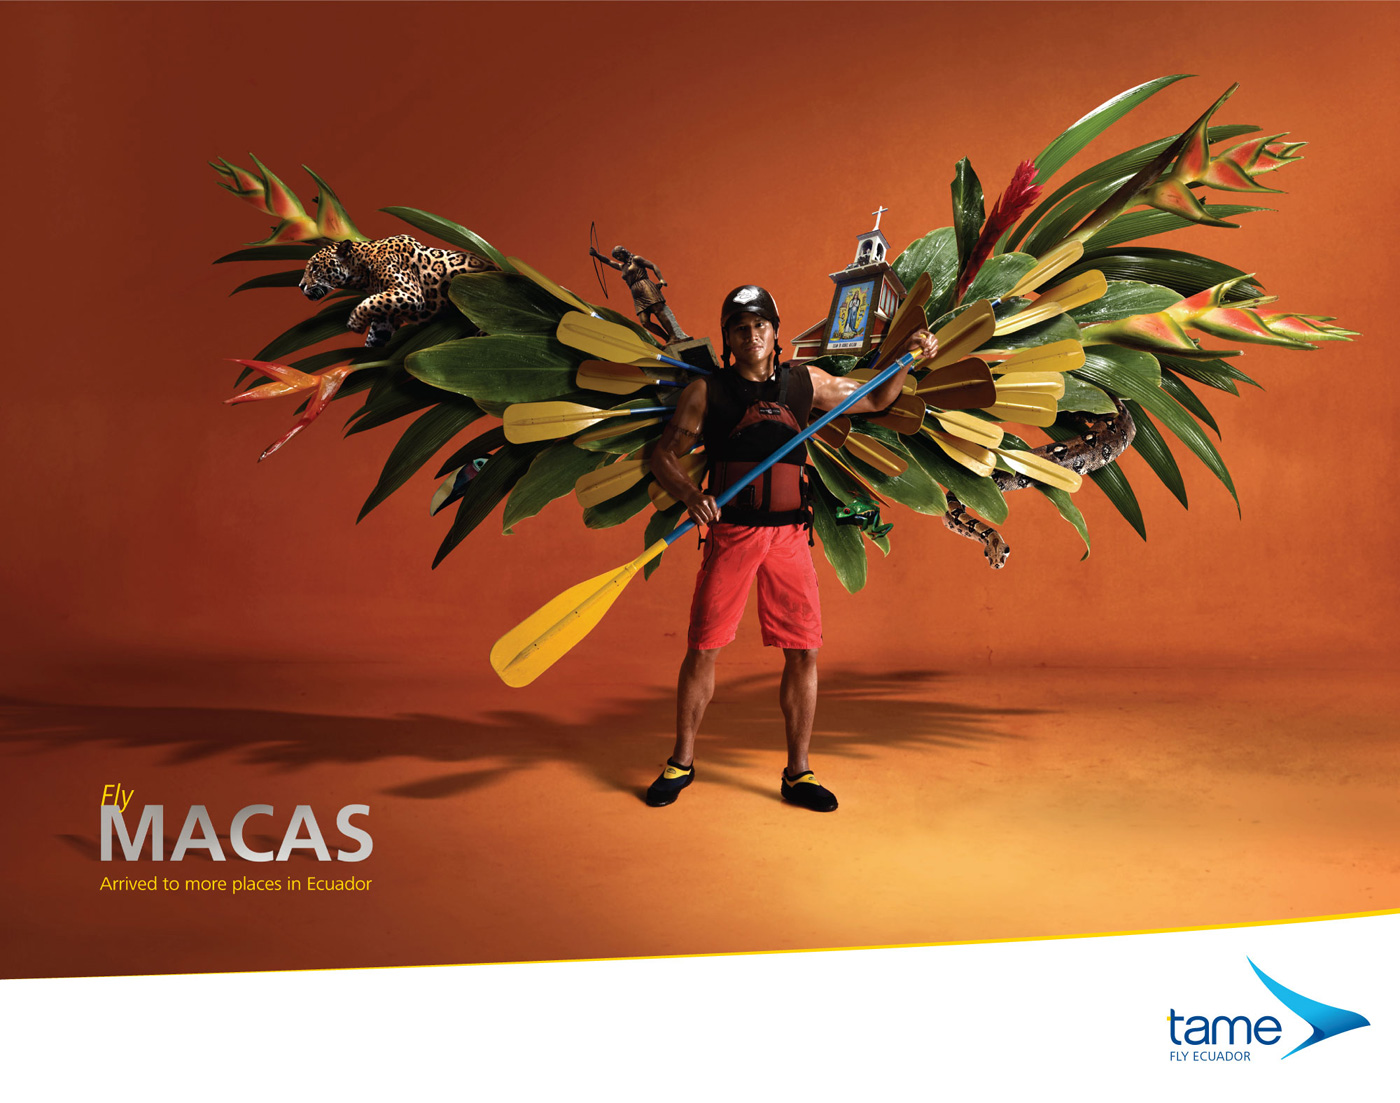 Fly MACAS Arrived to more places in Ecuador